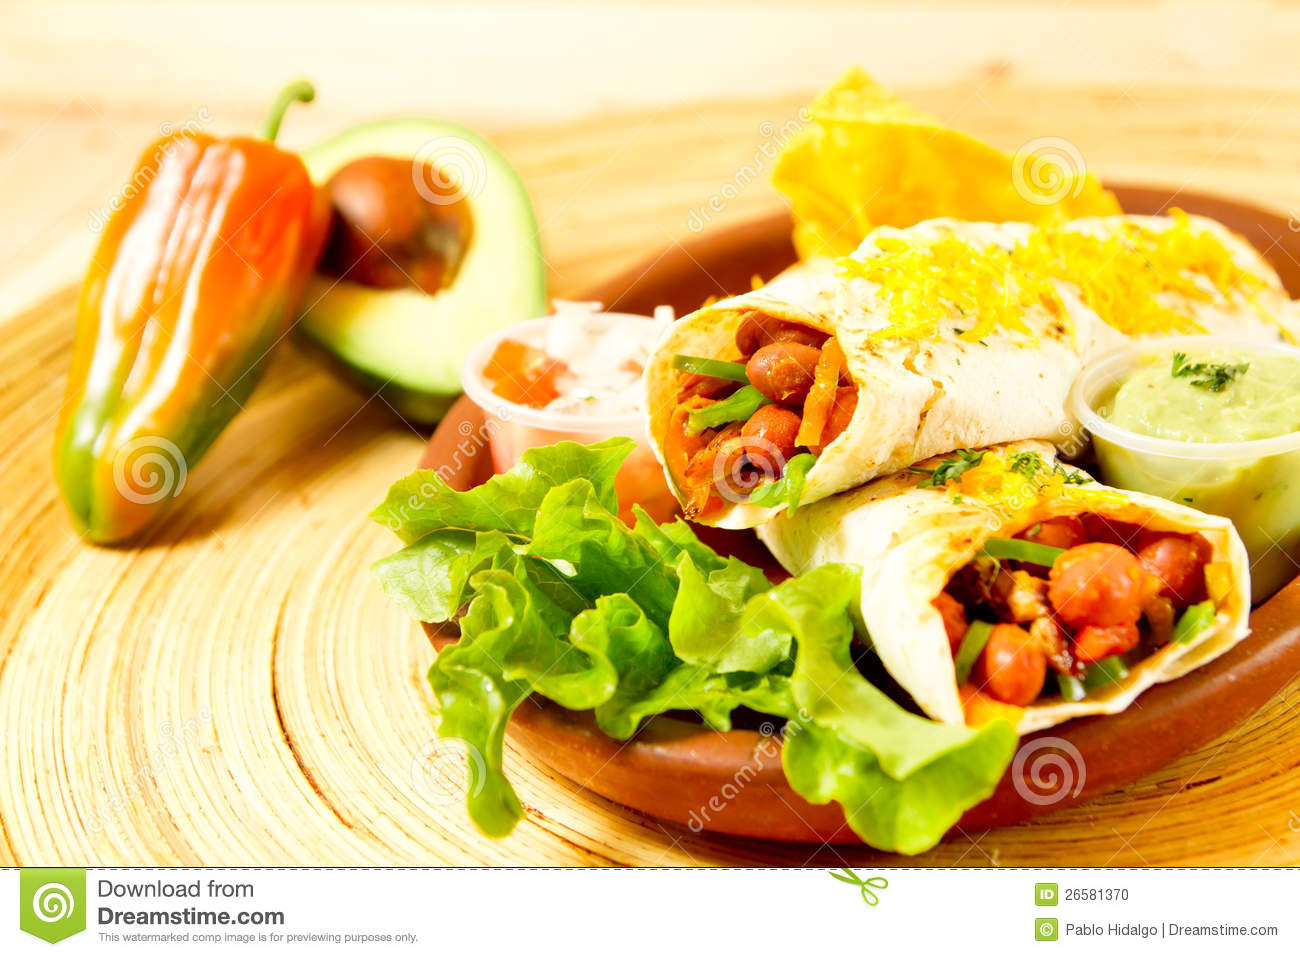 Colorful Mexican Food Plate With Tacos Stock Photo Image Of